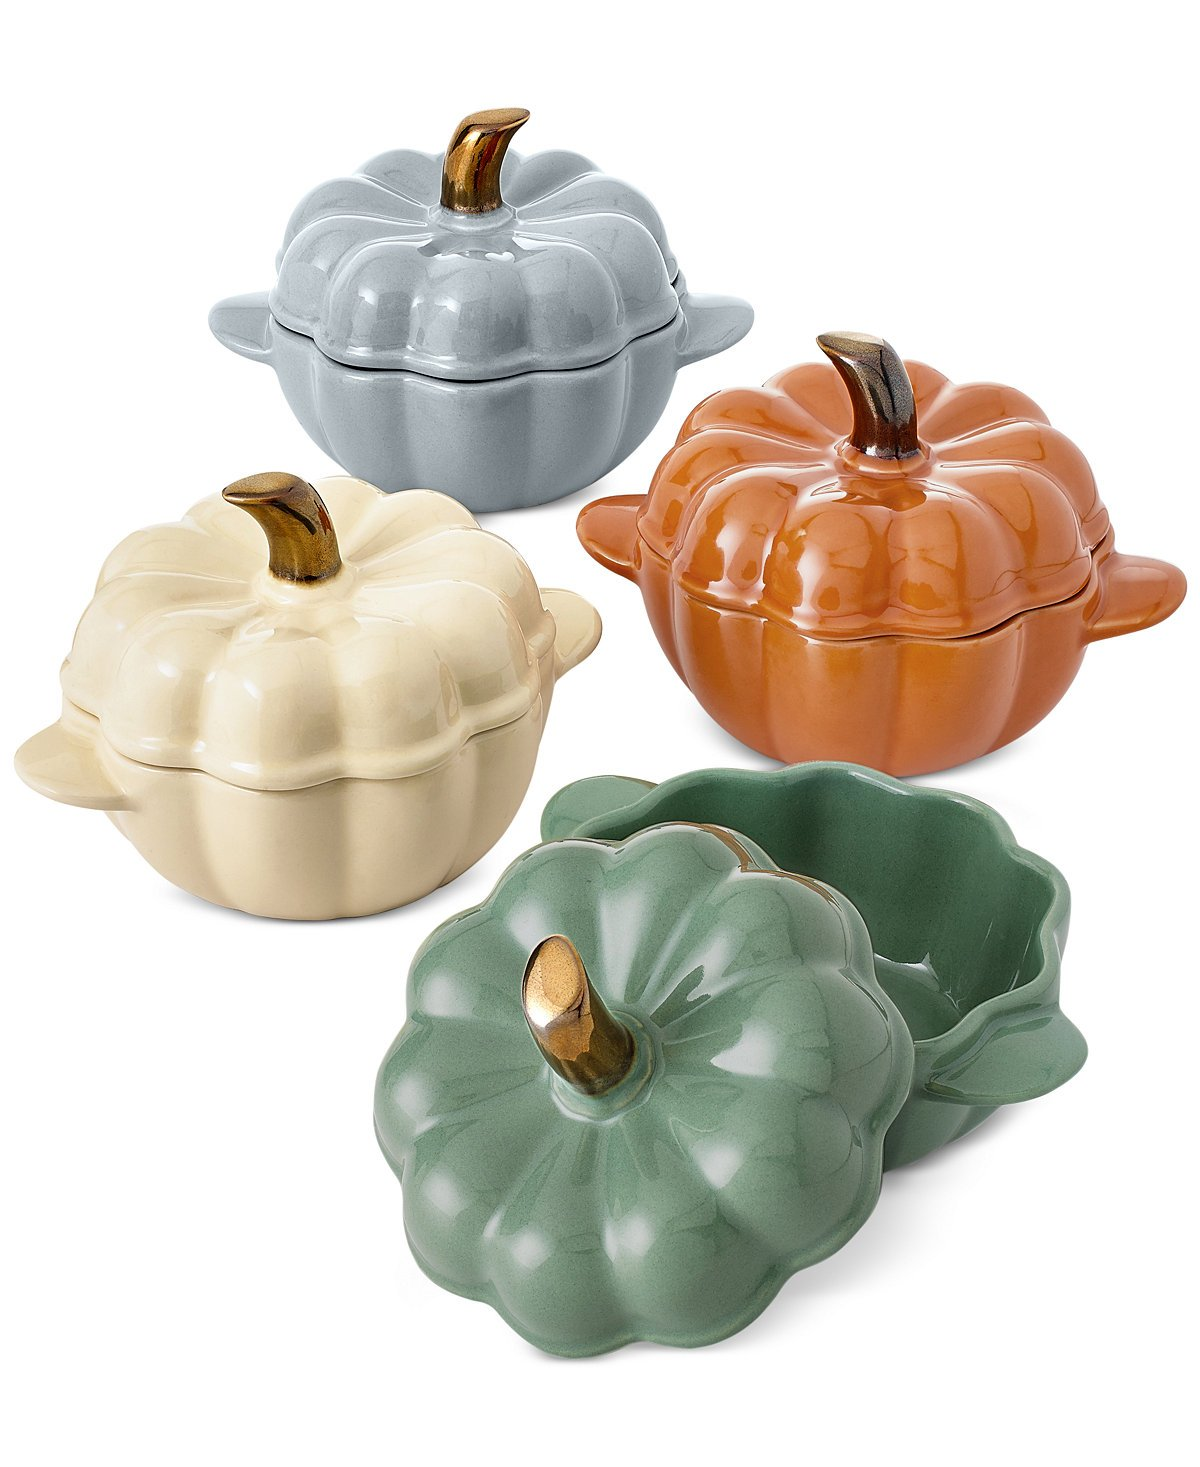 4-Pc. Ceramic Pumpkin Cocotte Set Martha Stewart